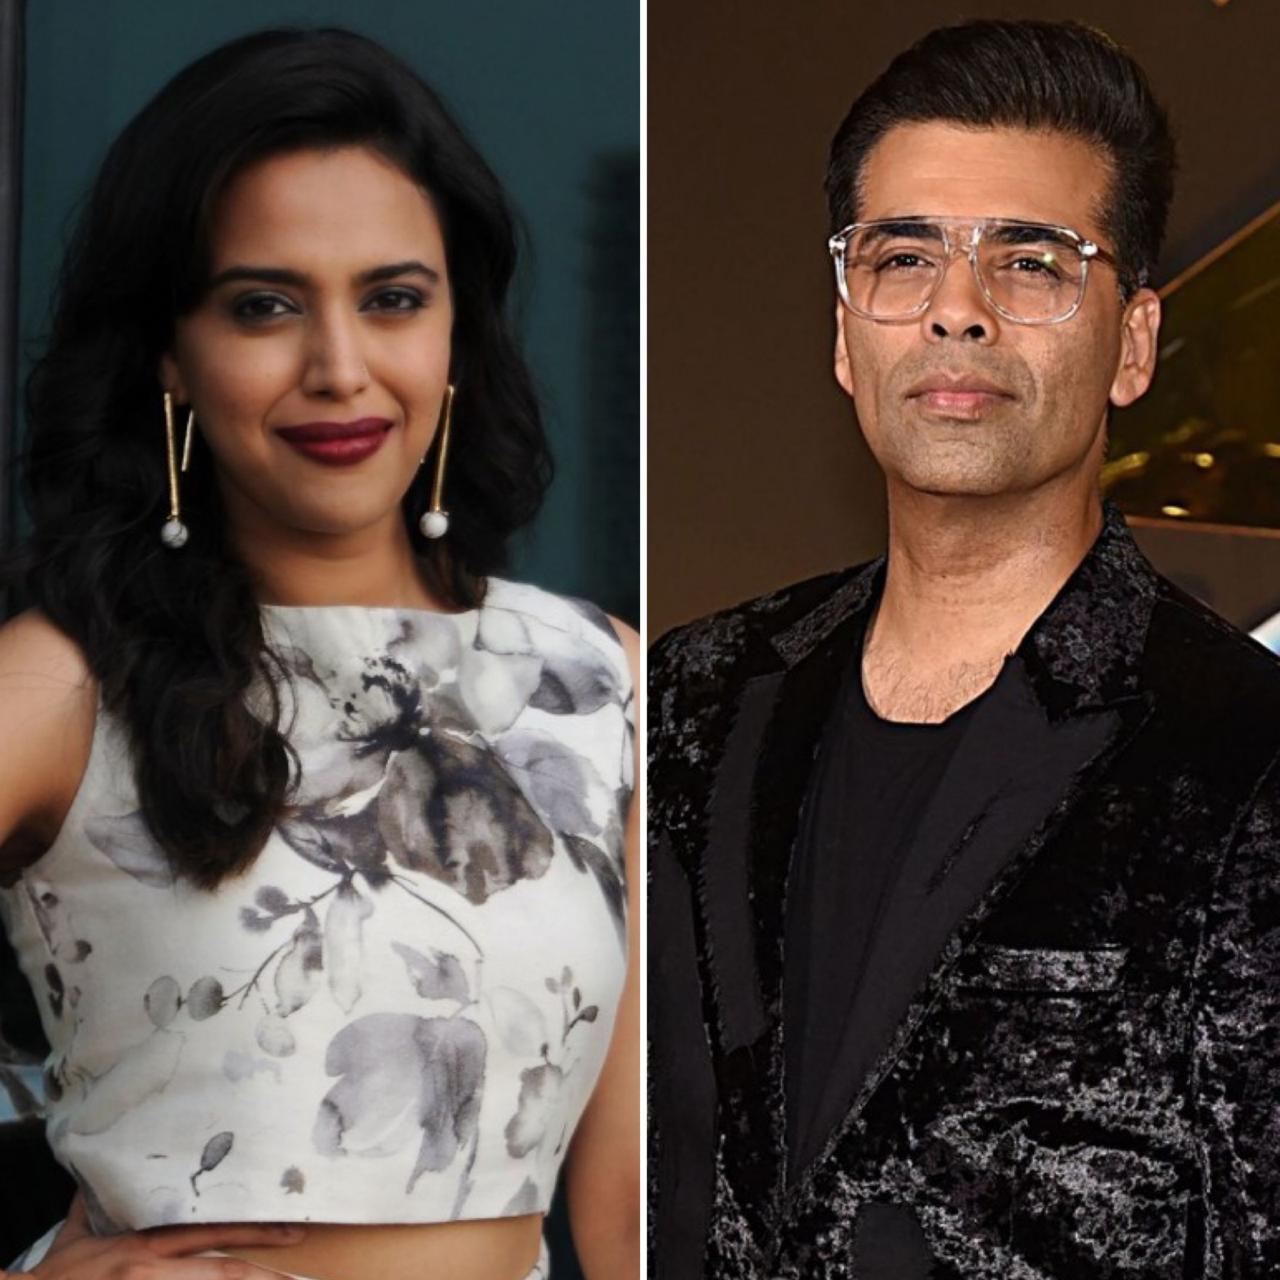 before kangana swara bhaskar asked karan johar about nepotism in bollywood